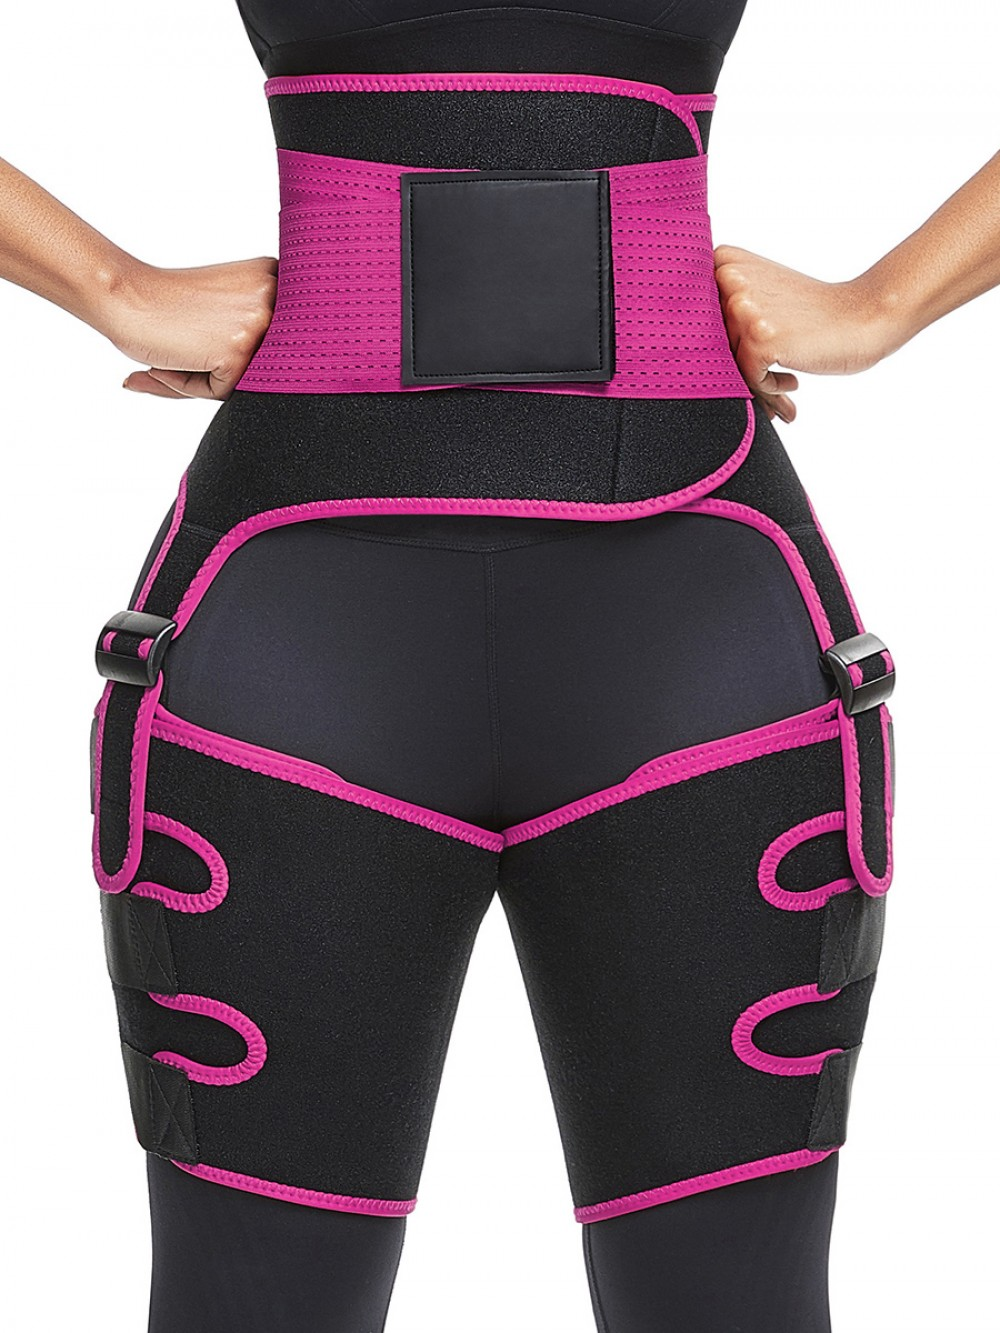 Rose Red Neoprene Adjustable Sticker Thigh Trimmer Firm Foundations